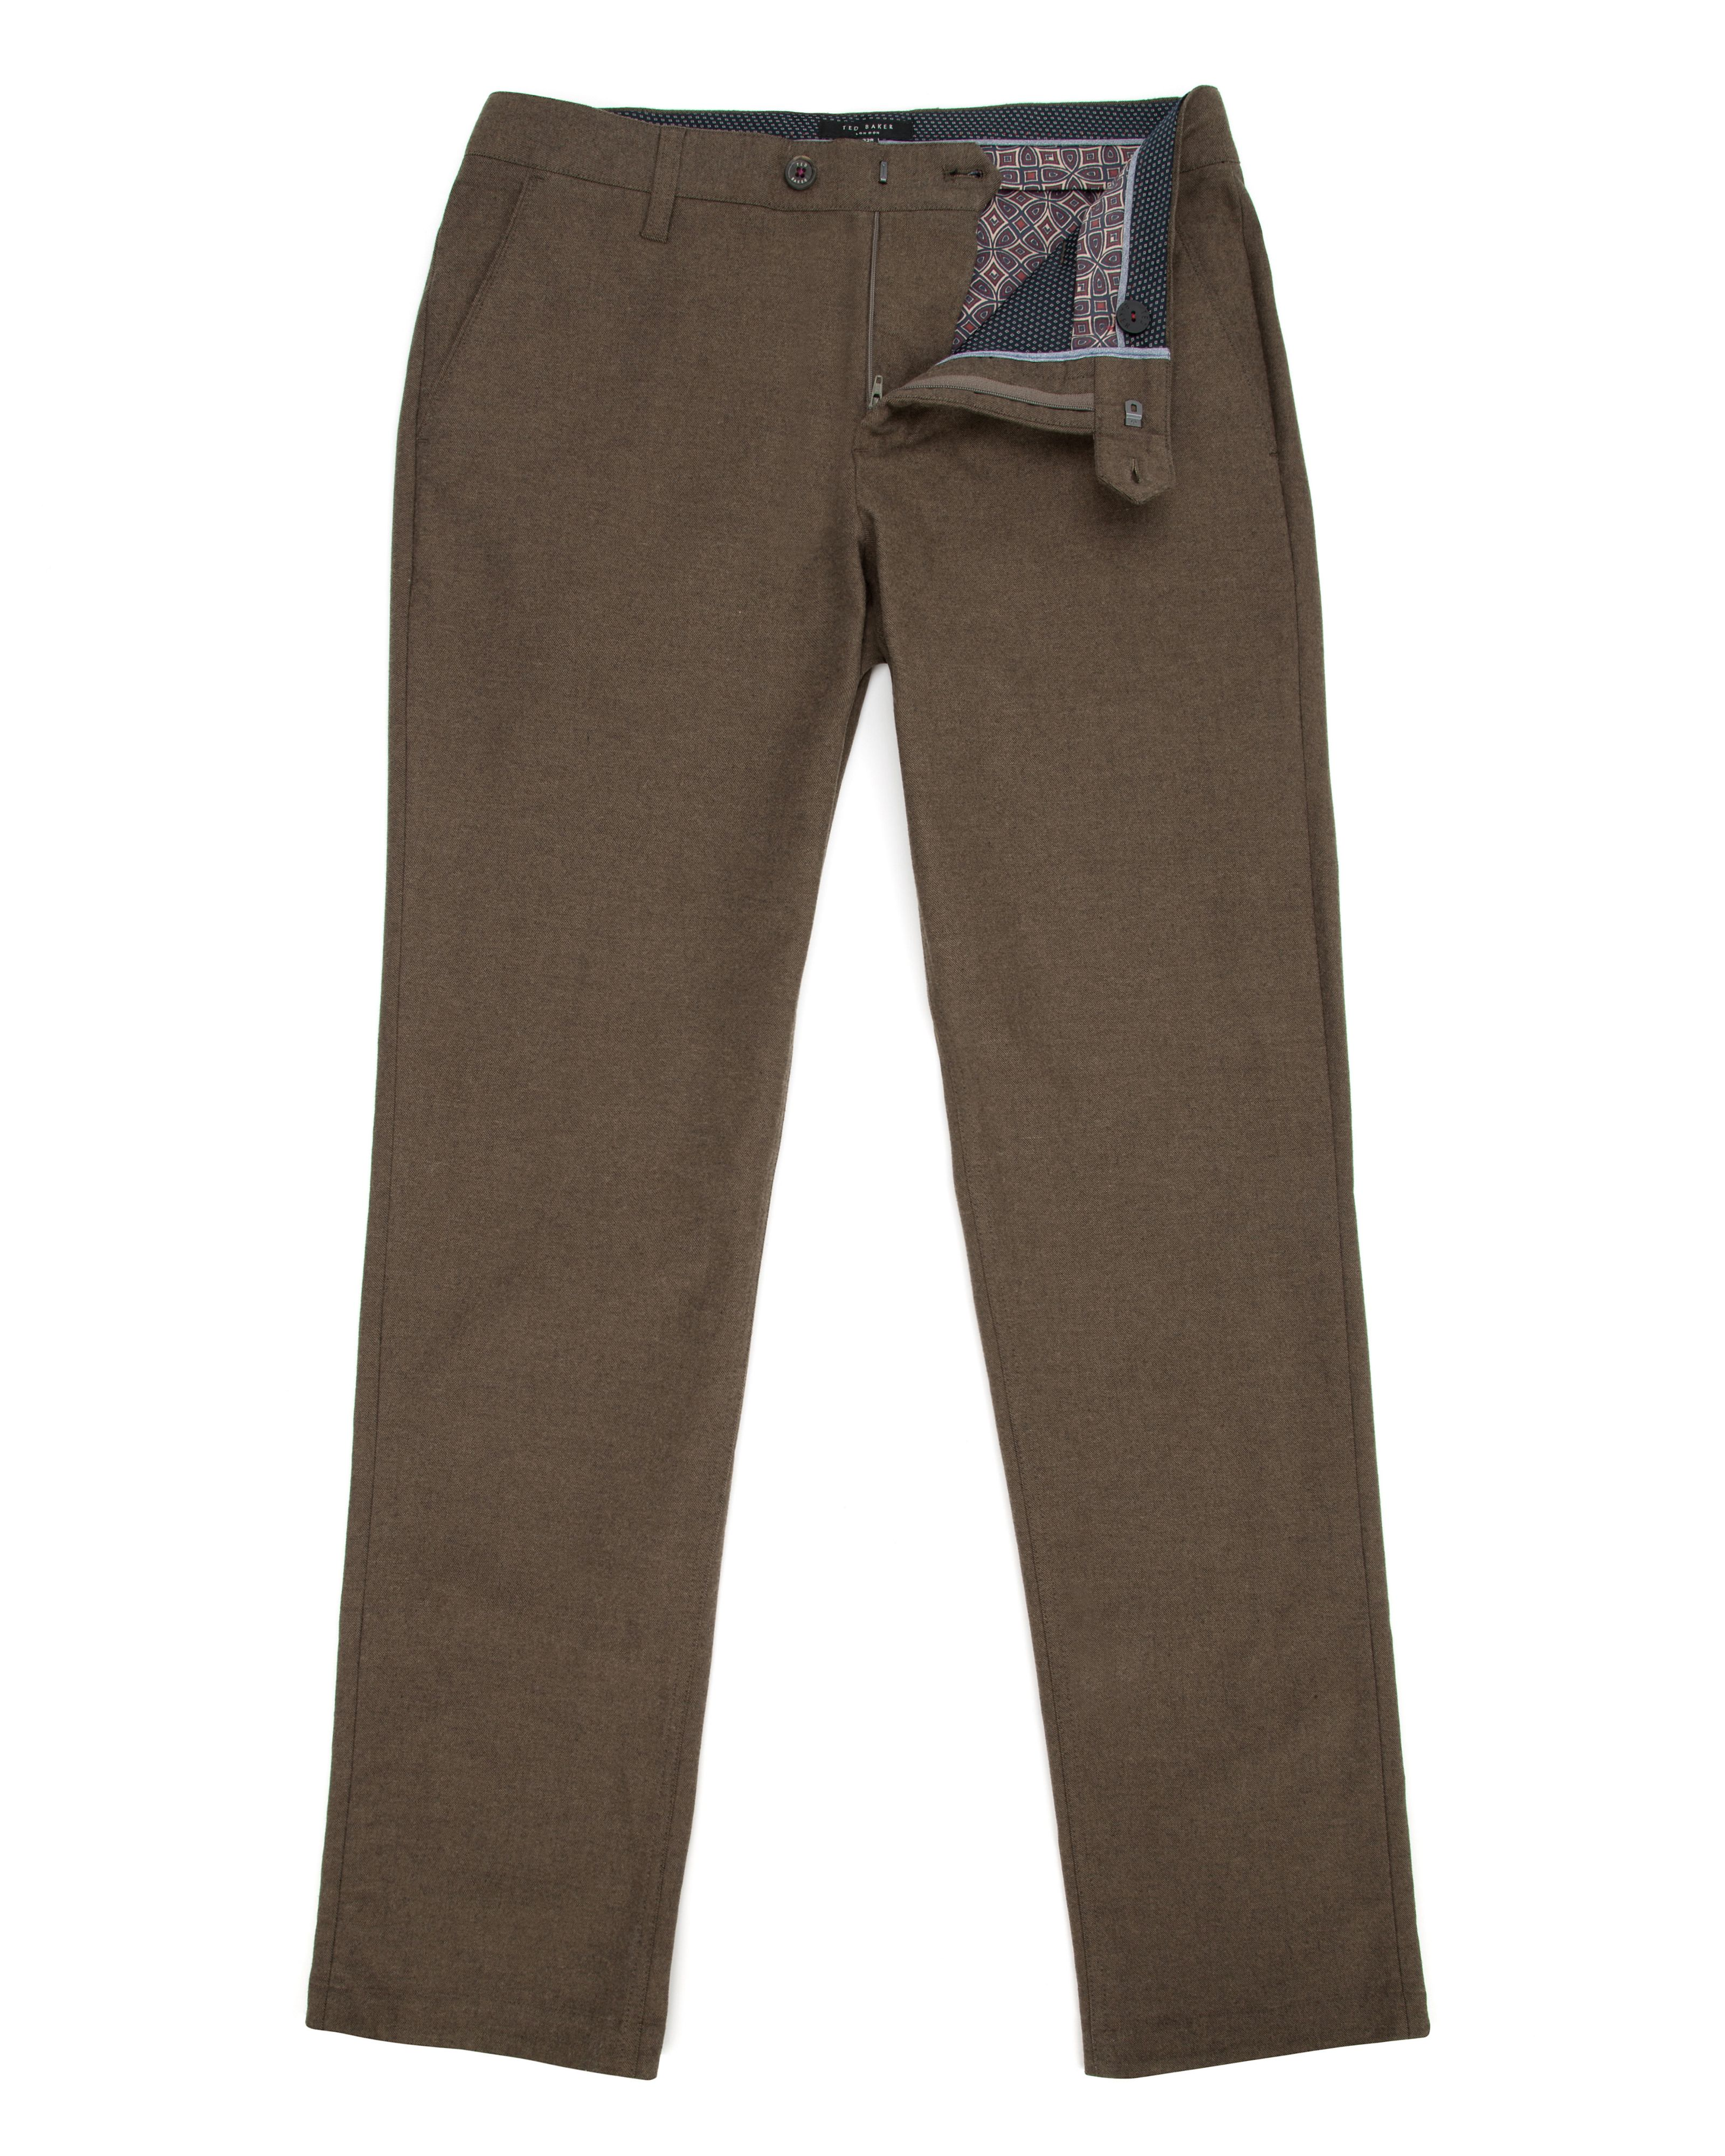 Funwig classic fit brushed cotton chino